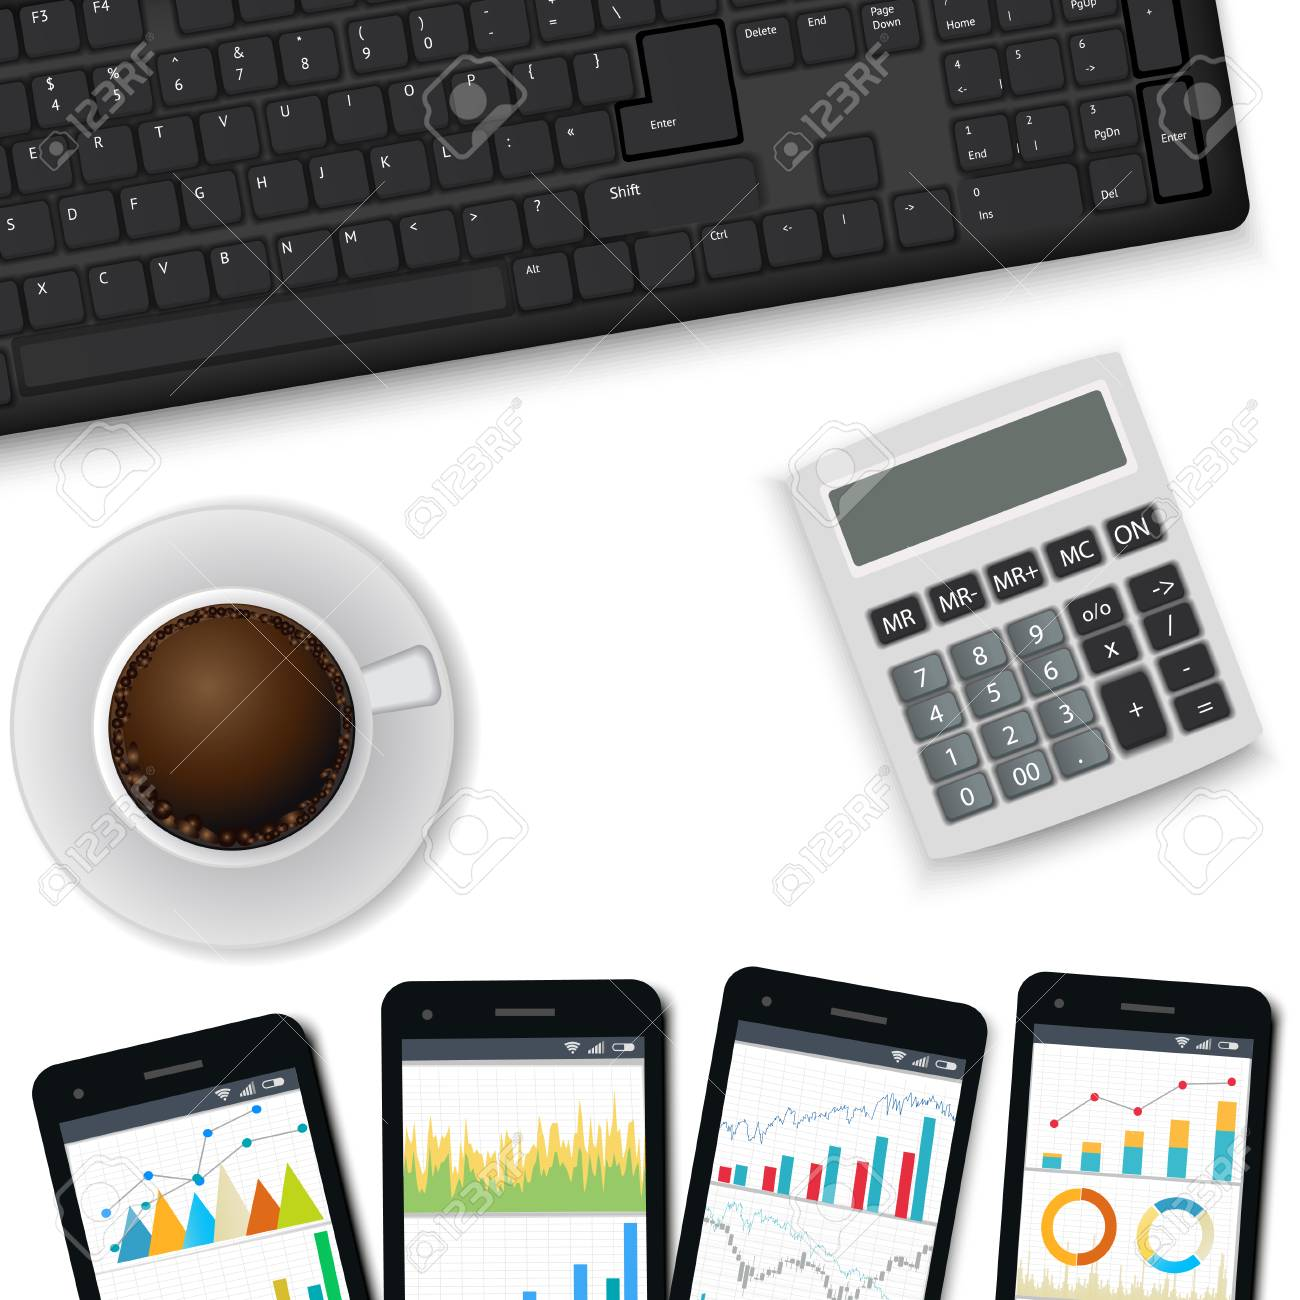 Desk With Keyboard Mobile Phones Calculator Cup Of Coffee Royalty Free Cliparts Vectors And Stock Illustration Image 98280178